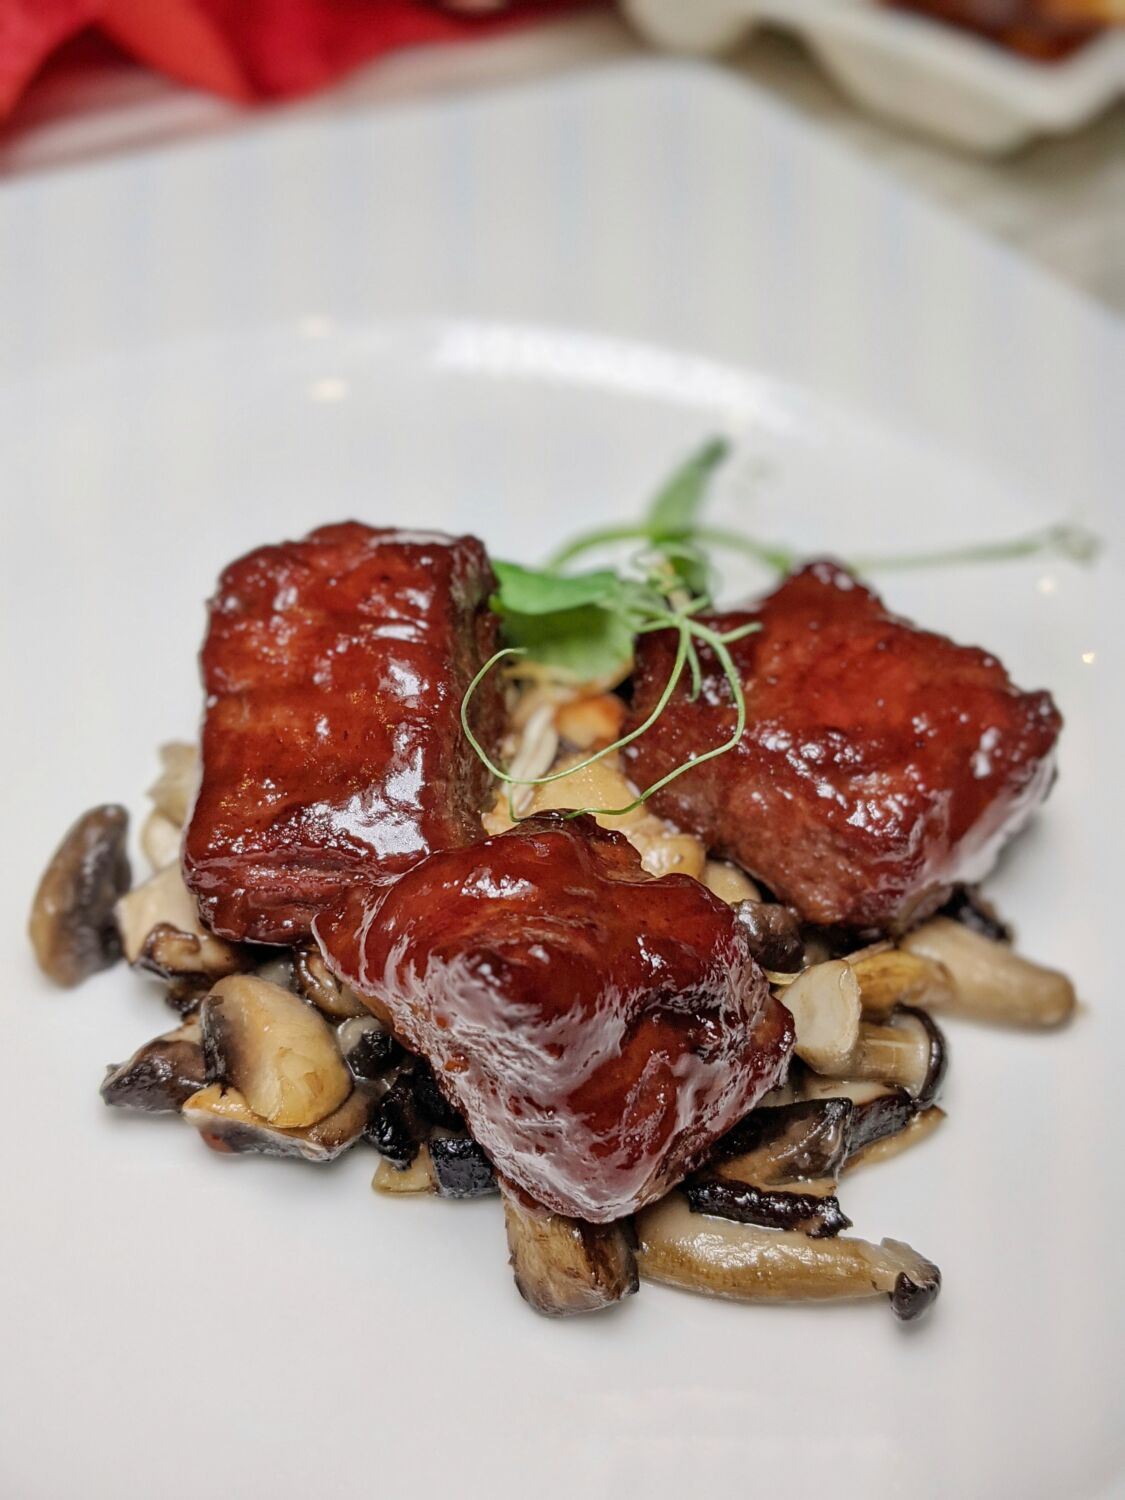 Singapore Marriott Tang Plaza Hotel Wan Hao Chinese Restaurant Wok-fried Beef Tenderloin with Fermented Red Rice Sauce